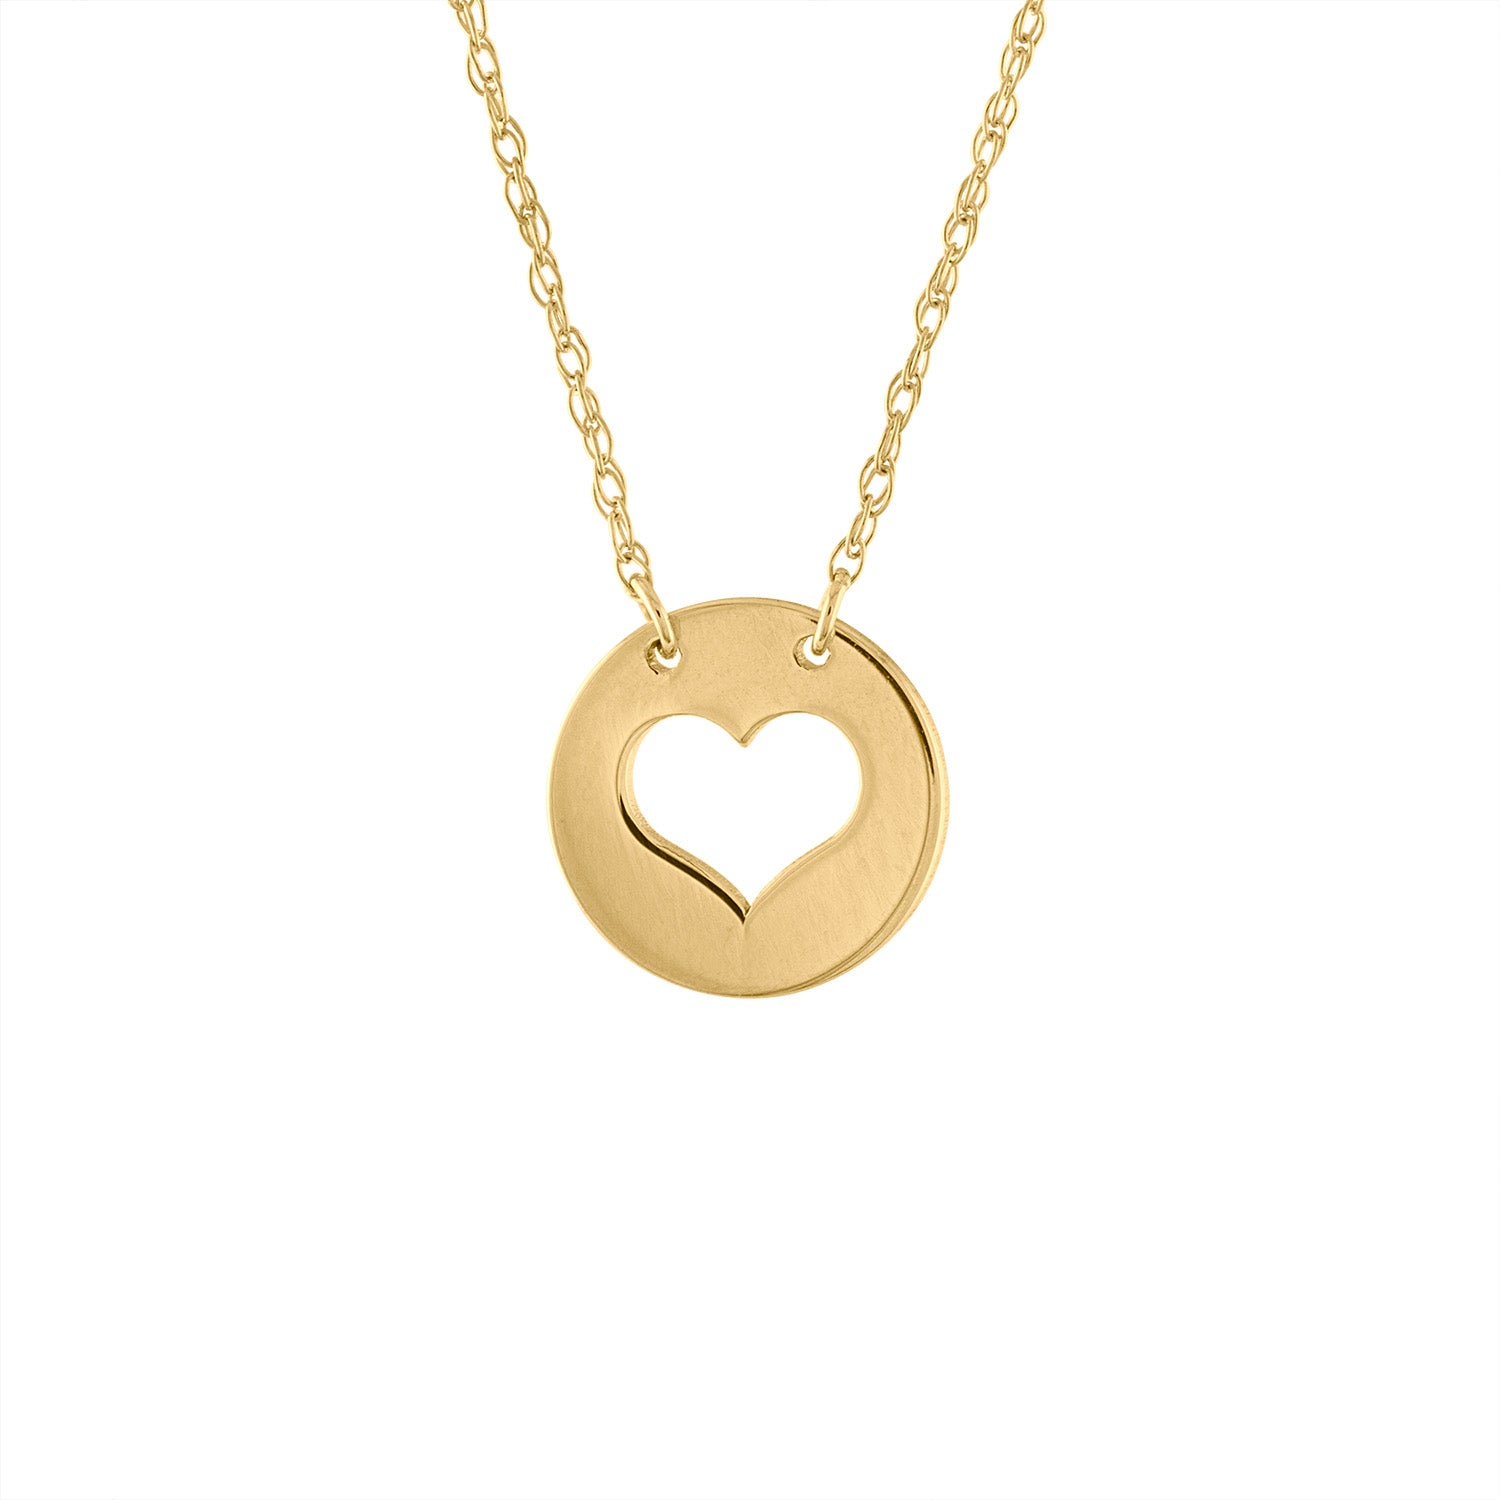 14KT GOLD CUT OUT HEART DISK NECKLACE